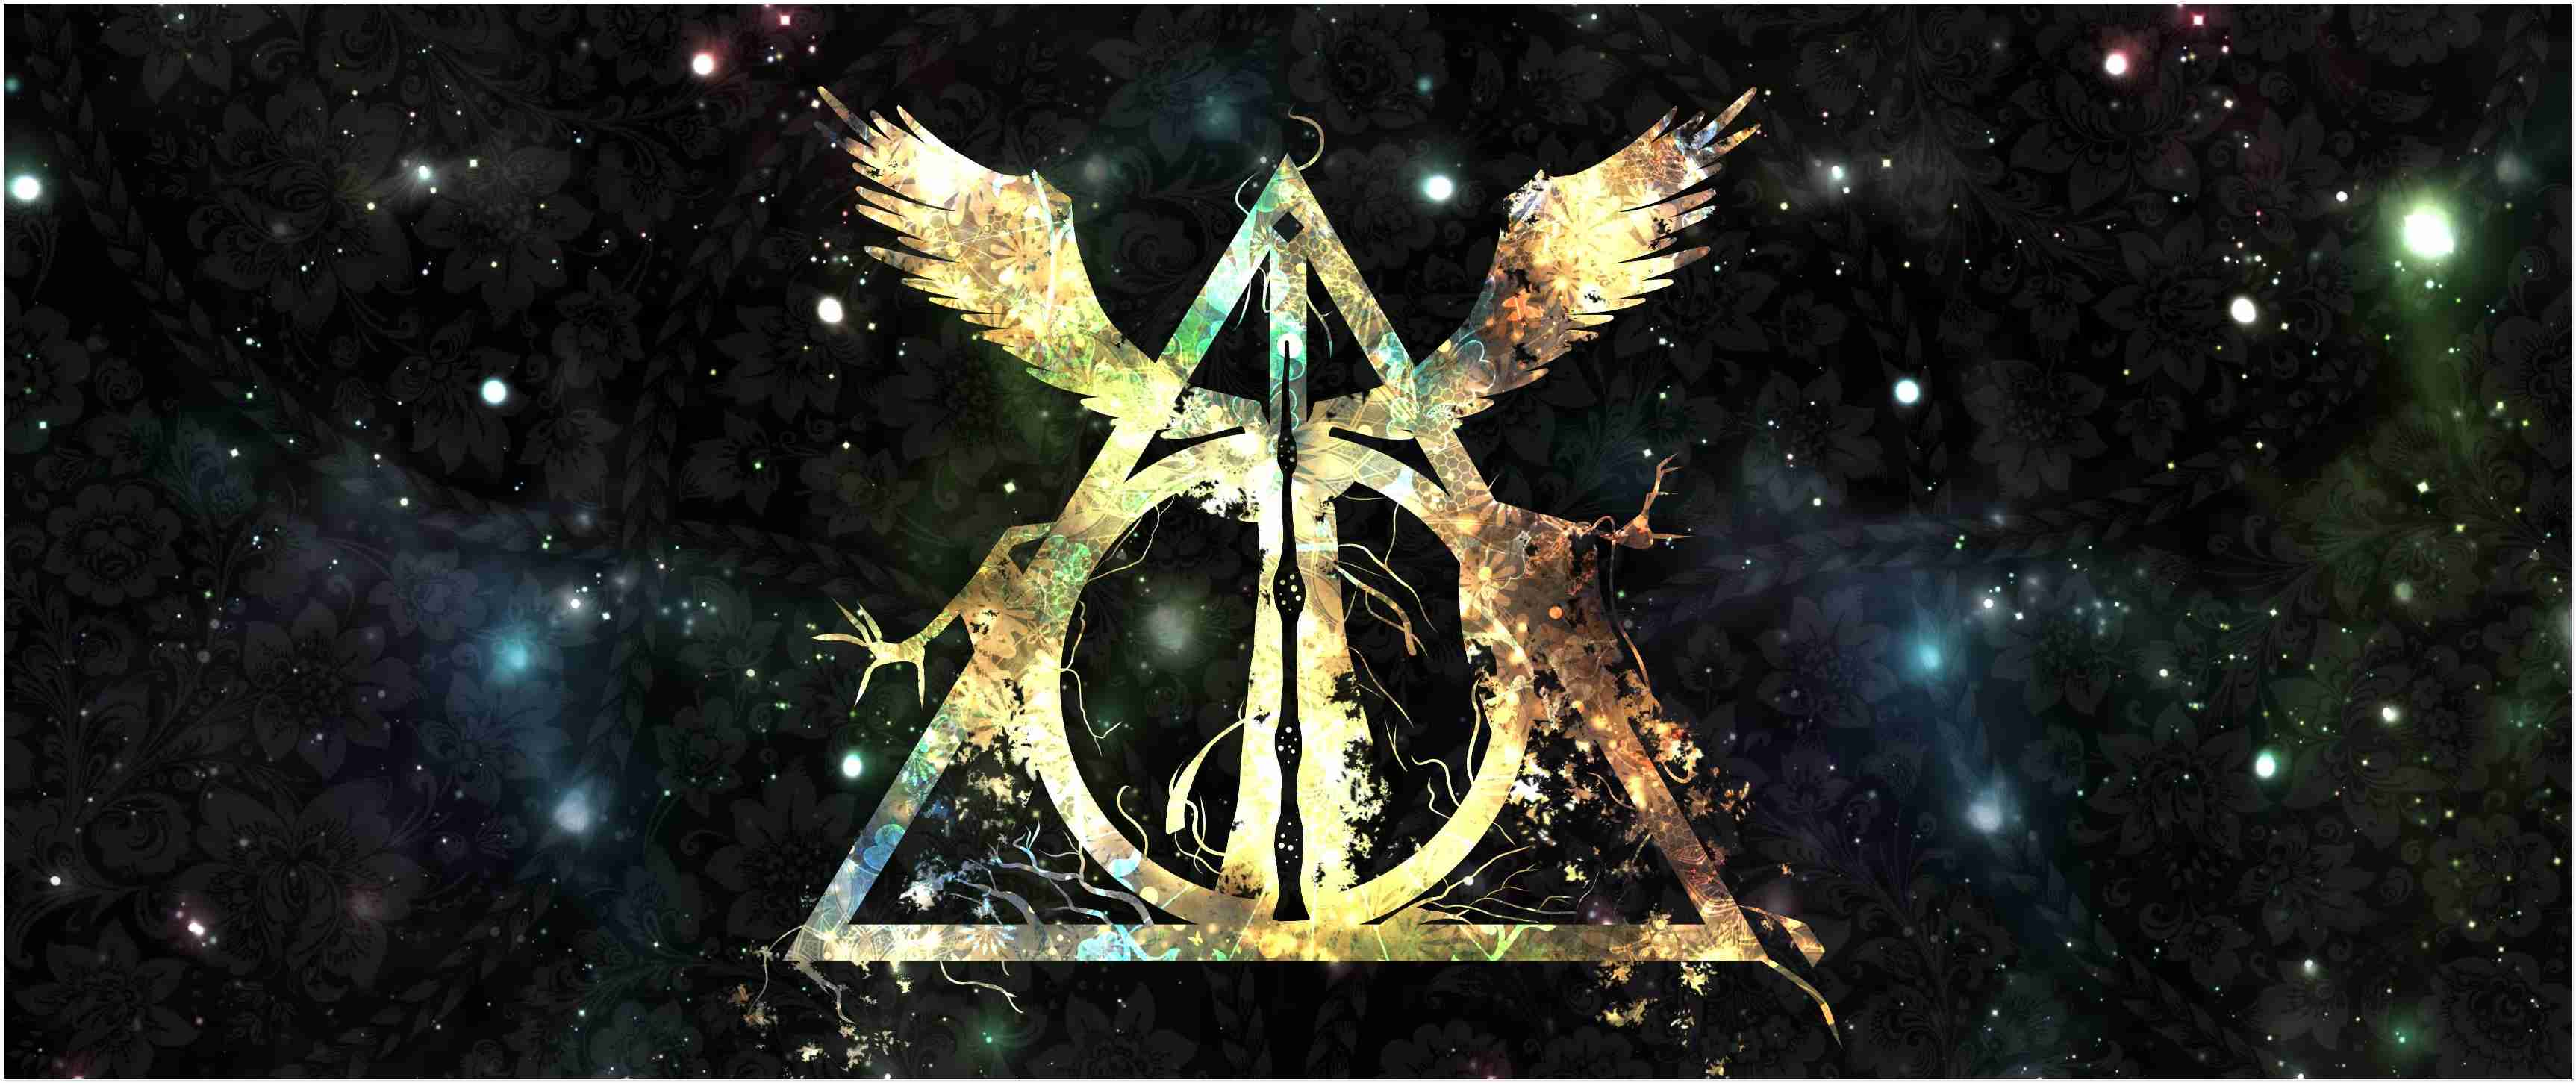 Best 15 harry potter wallpapers   2020 latest Update Wallpapers Wise 3451x1451